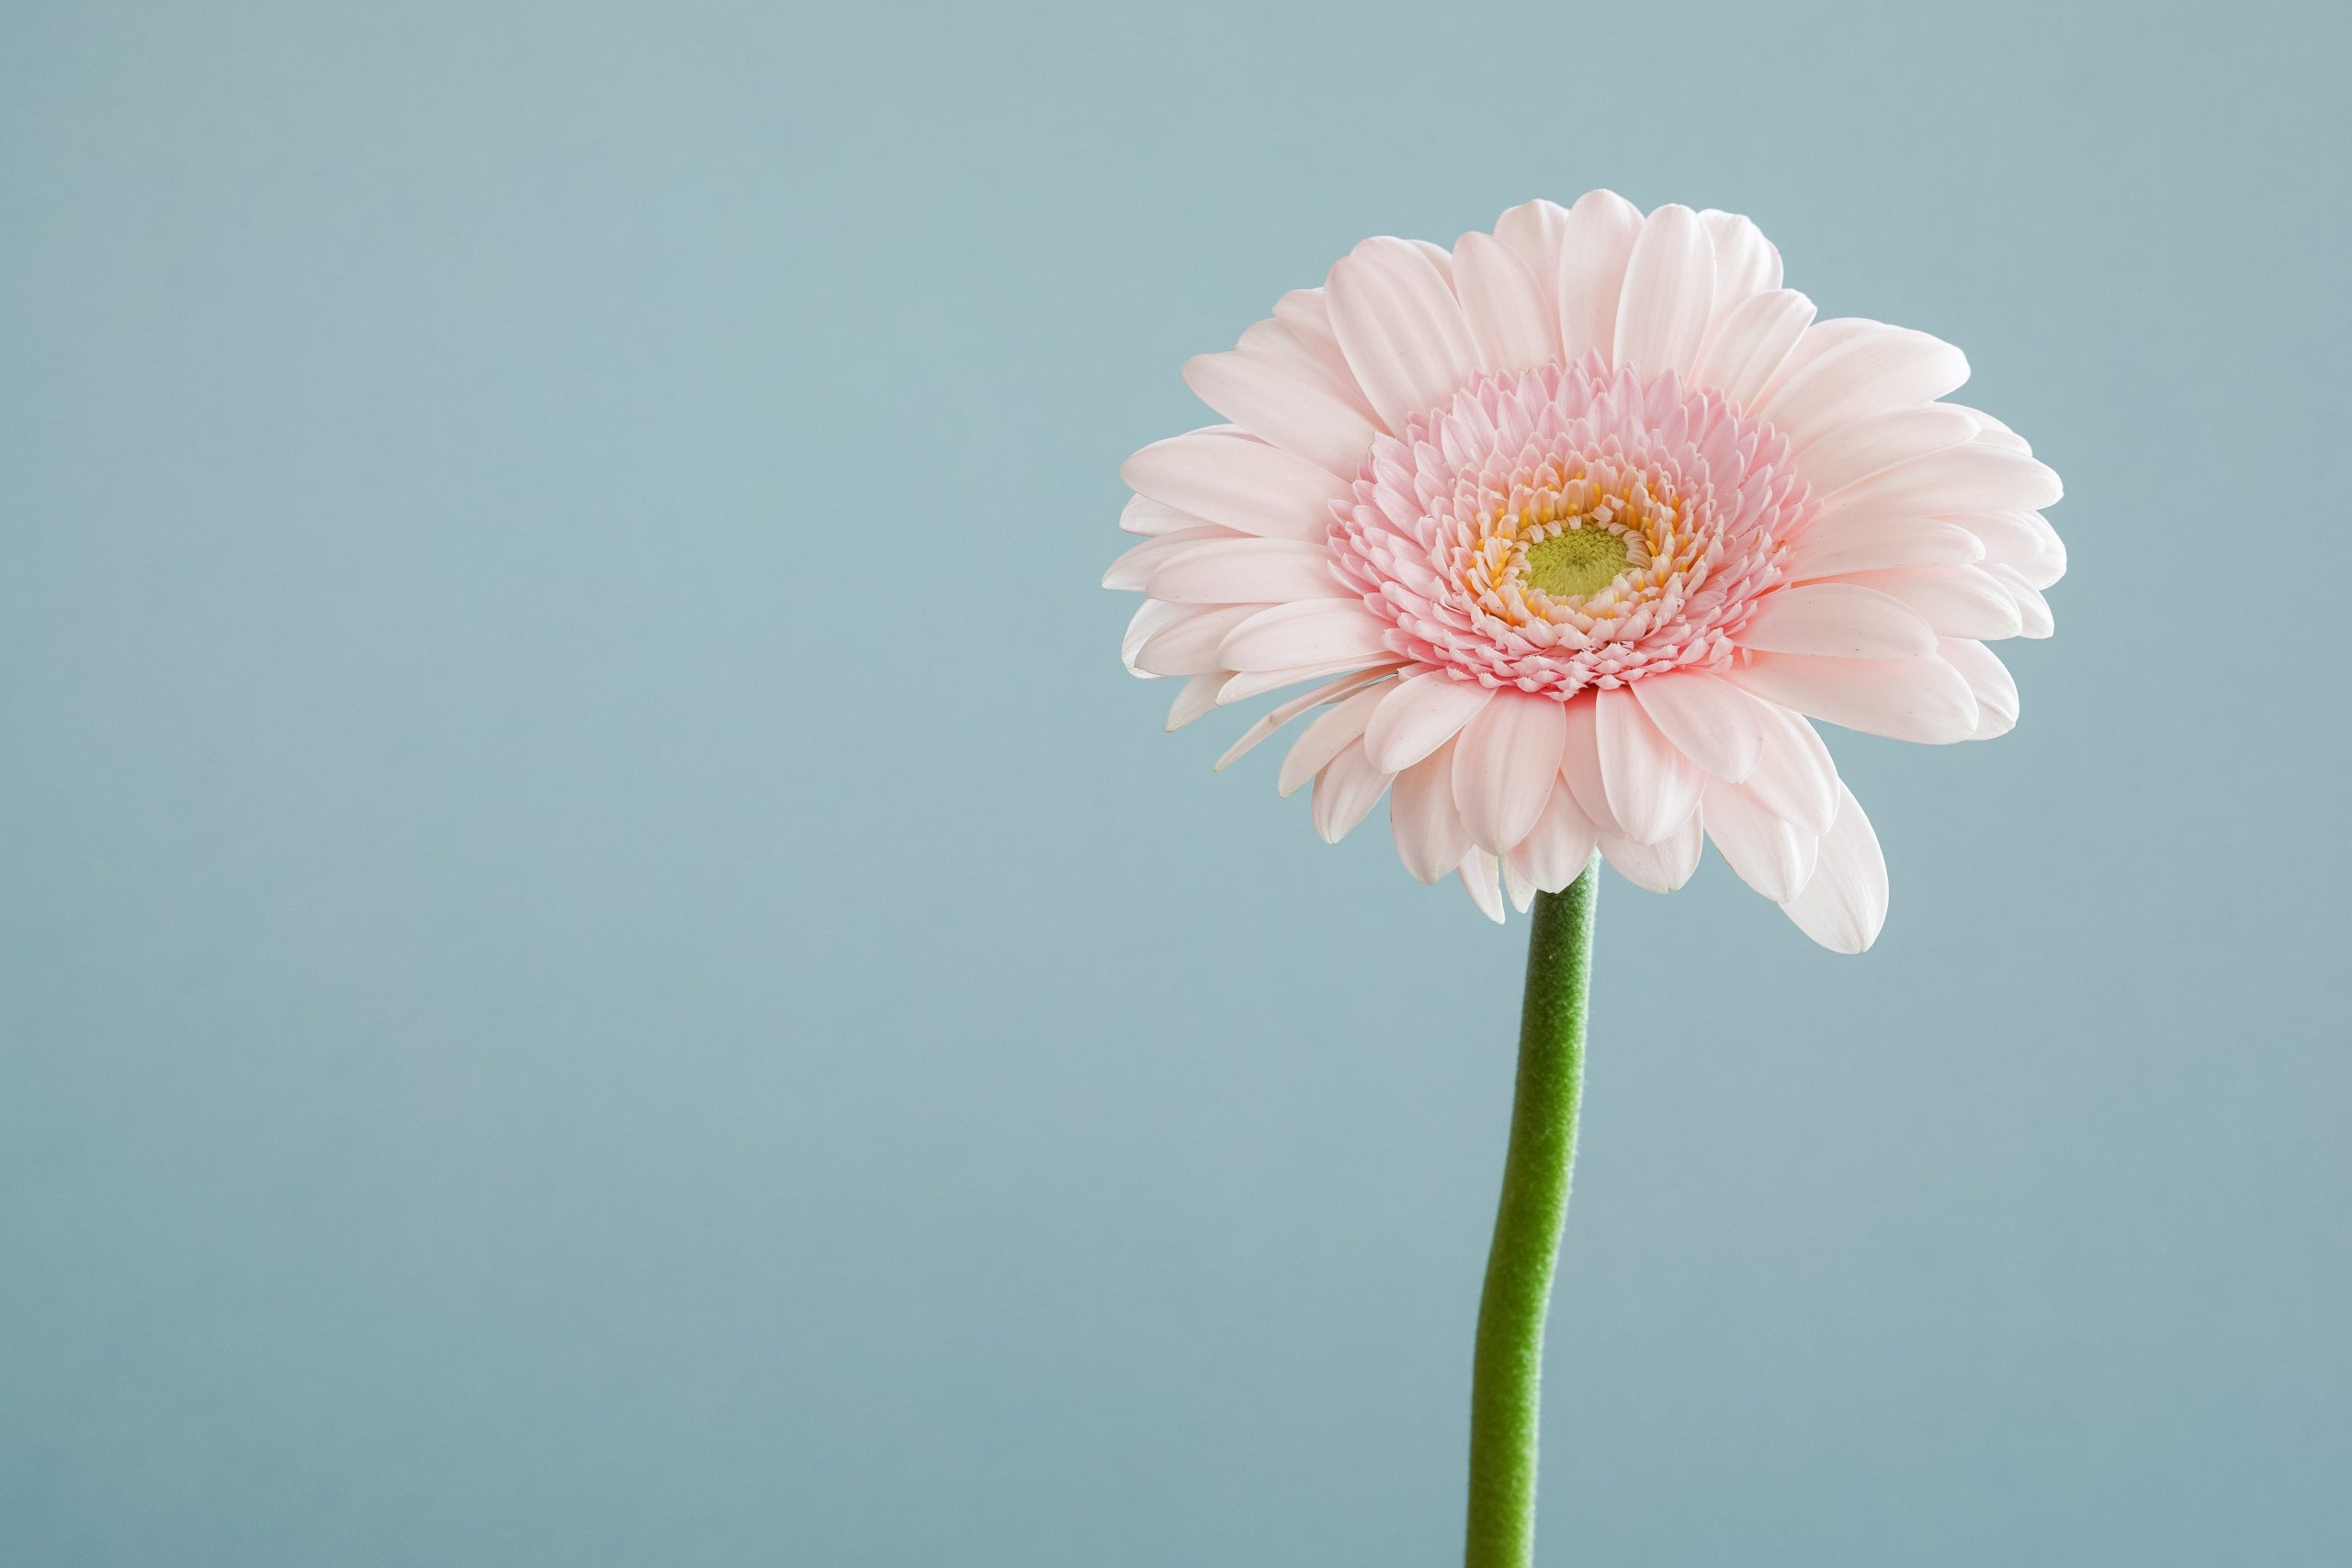 Picture of a flower